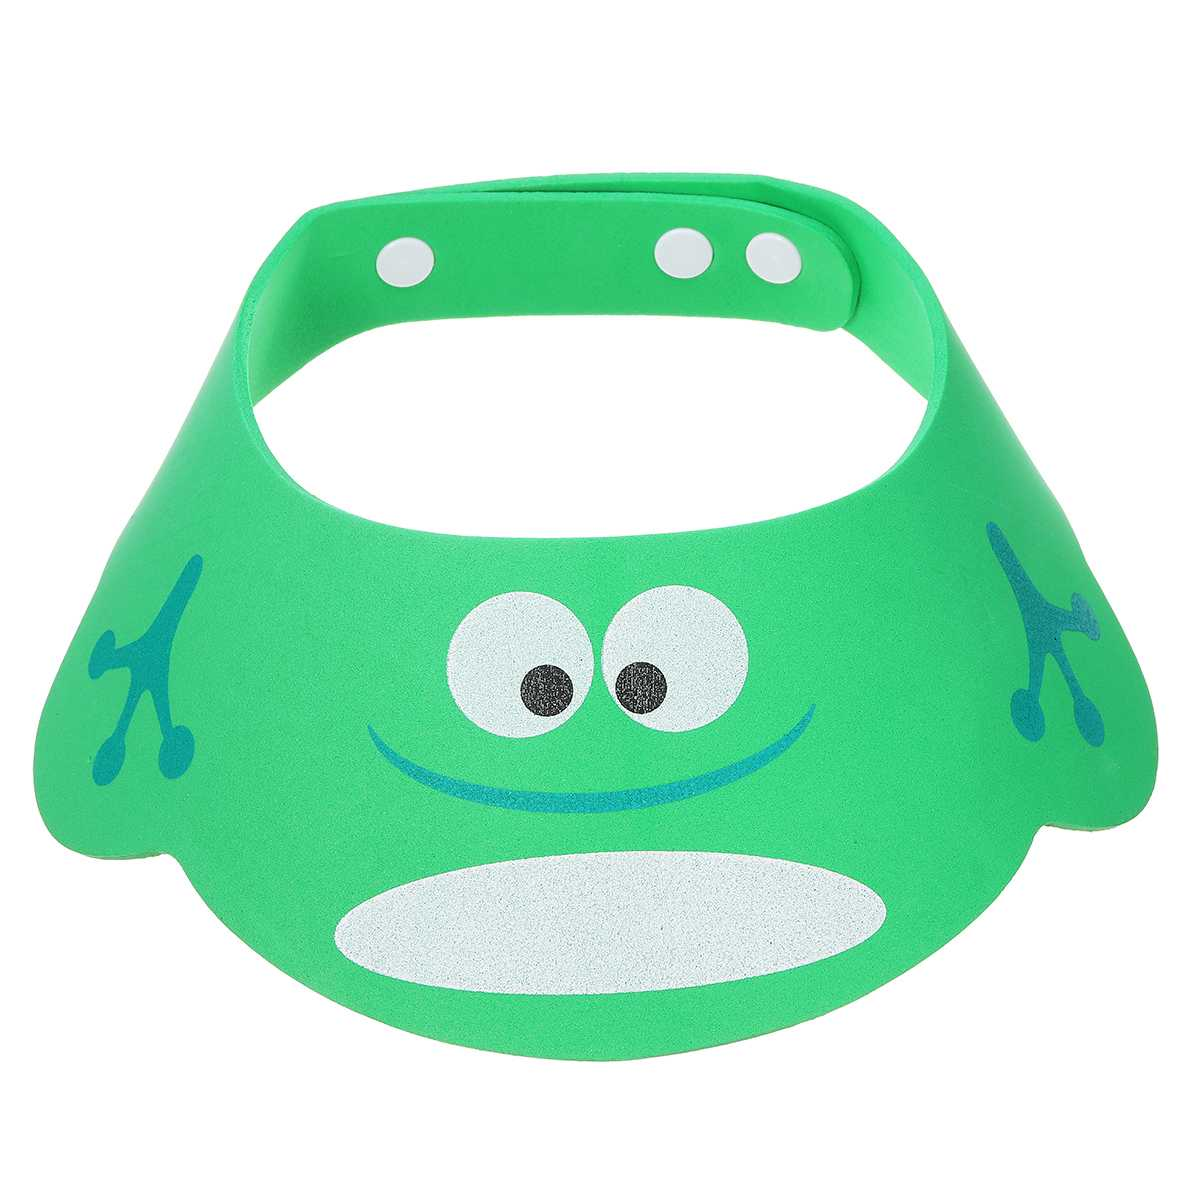 1pc Adjustable Frogs Baby Shower Hat Toddler Kid Shampoo Bathing Cap Wash Hair Shield Protect Ears Eyes Visor Caps for Baby Care